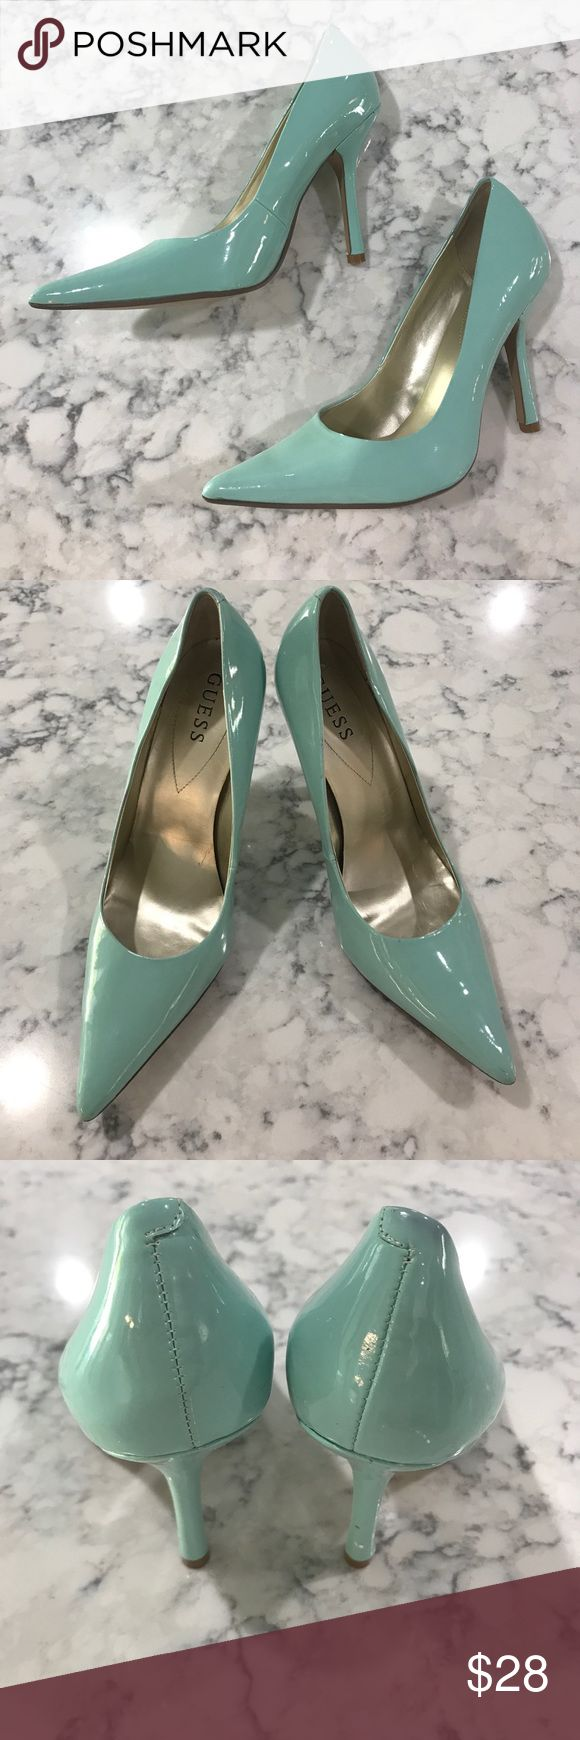 Guess Pointed Toe Mint Pumps Size 8.5 patent leather mint pointed toe heels. Without box. Worn once. Guess Shoes Heels